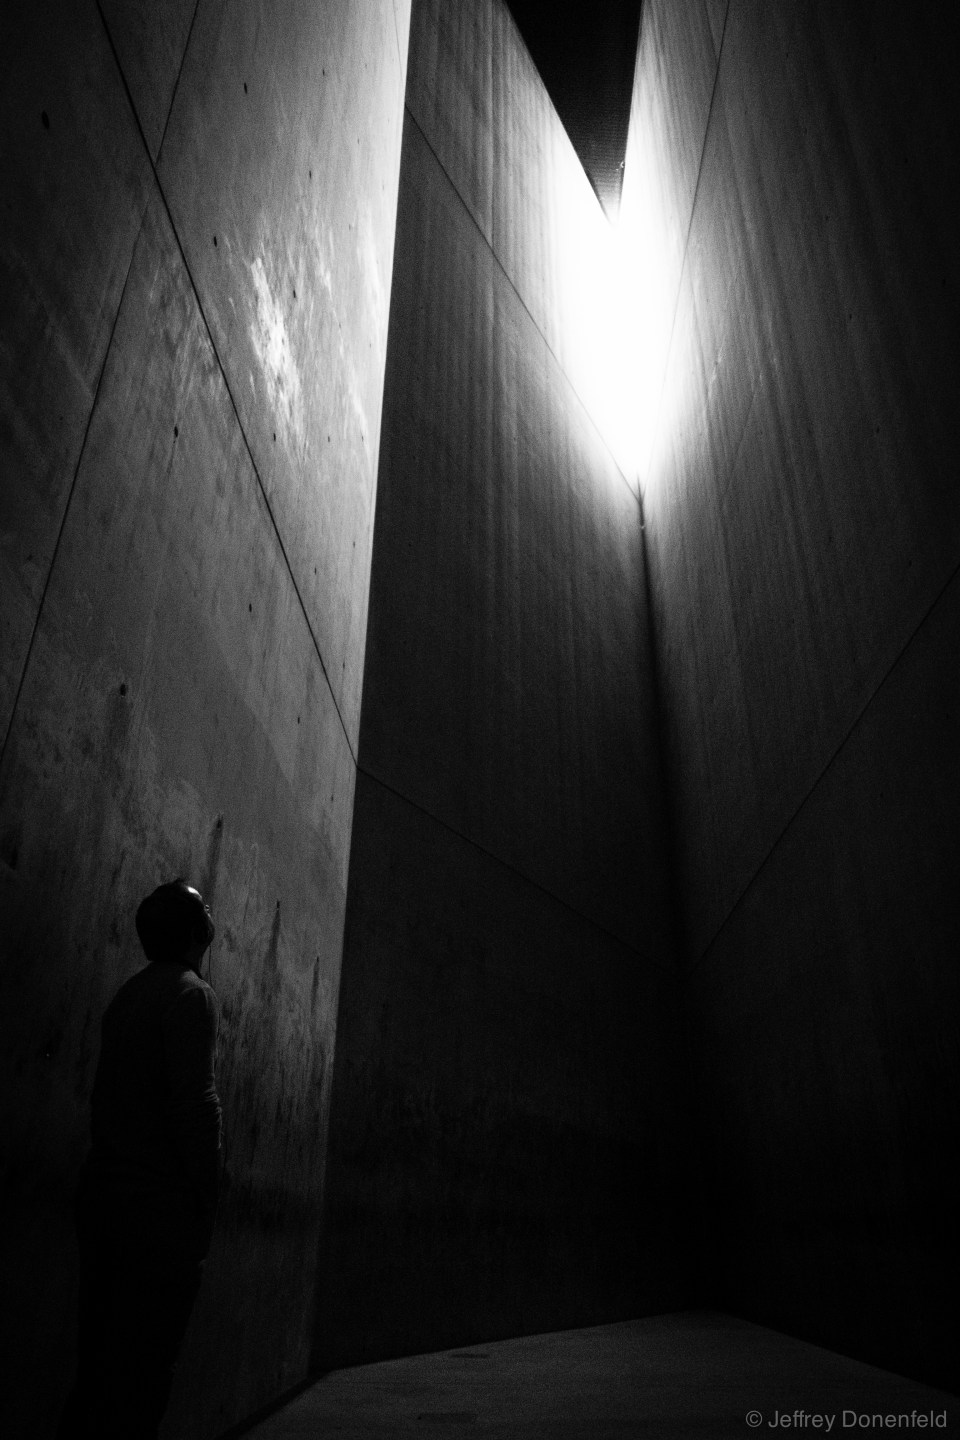 "Jewish Museum, Berlin. This is the Holocaust Tower. From Wikipedia: ""The first axis ends at a long staircase that leads to the permanent exhibition. The second axis connects the Museum proper to the E.T.A. Hoffmann Garden, or The Garden of Exile, whose foundation is tilted. The Garden's oleaster grows out of reach, atop 49 tall pillars. The third axis leads from the Museum to the Holocaust Tower, a 79 foot (24 m) tall empty silo. The bare concrete Tower is neither heated nor cooled, and its only light comes from a small slit in its roof."""